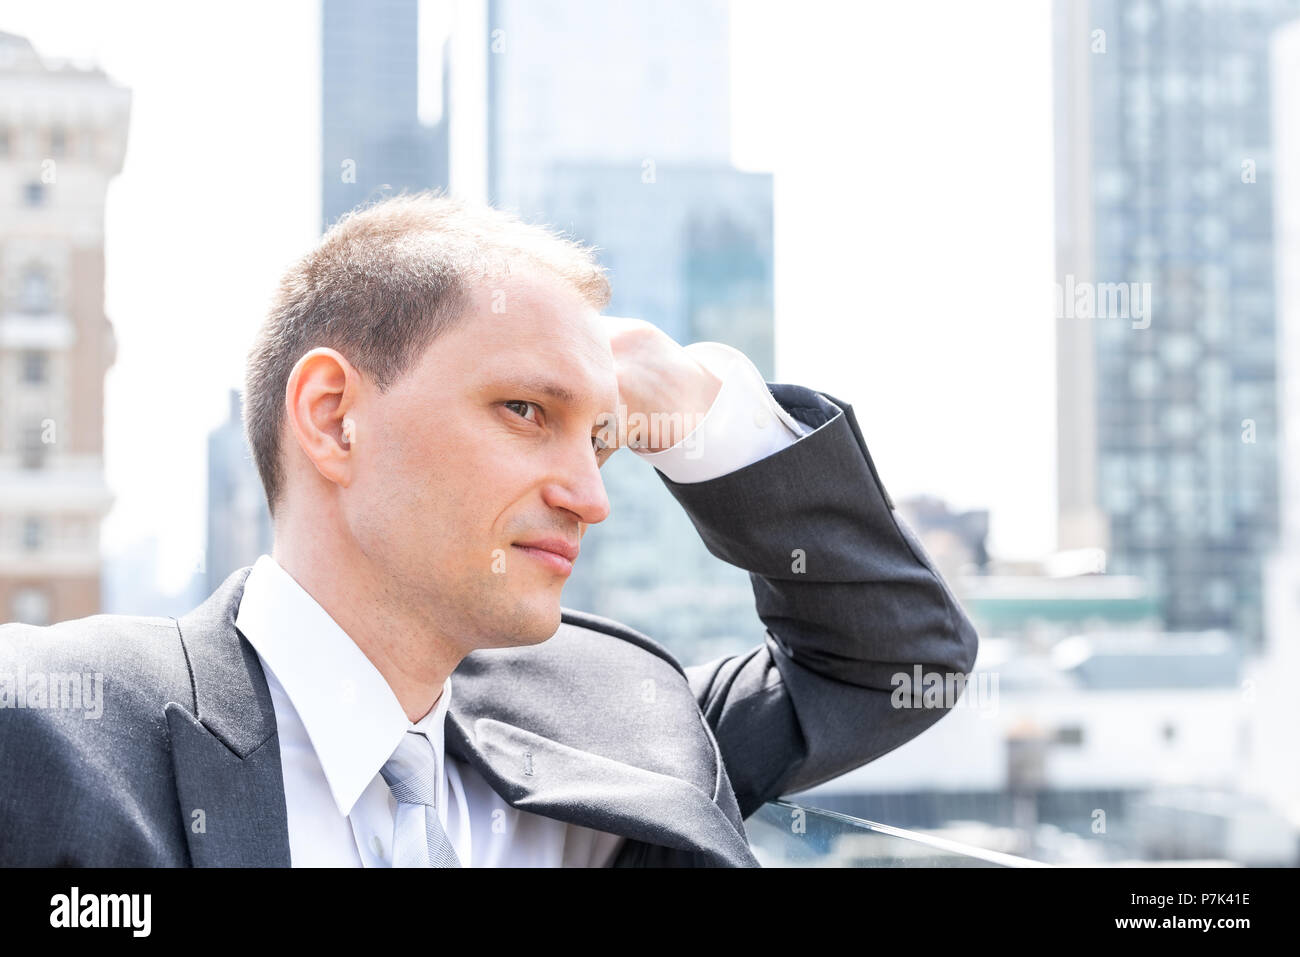 Handsome, attractive young side profile businessman closeup face portrait standing in suit, tie, looking at New York City cityscape skyline in Manhatt Stock Photo